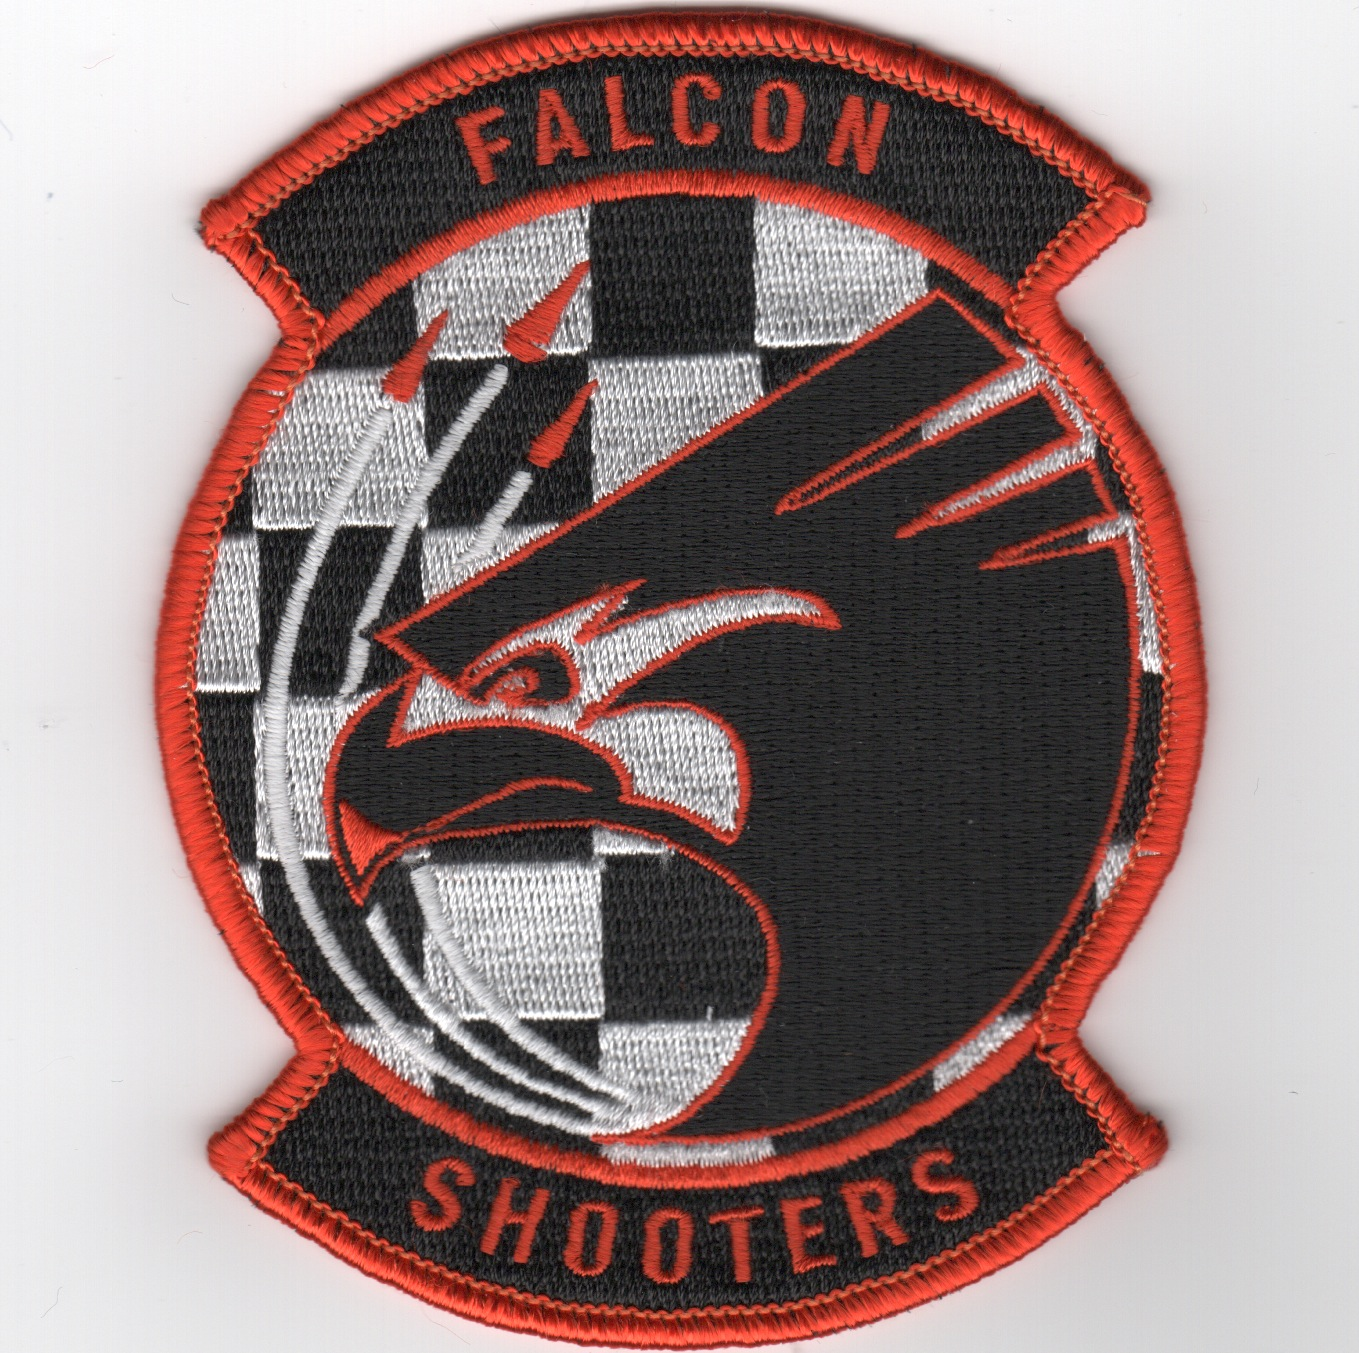 VFA-137 'Falcon Shooters' Patch